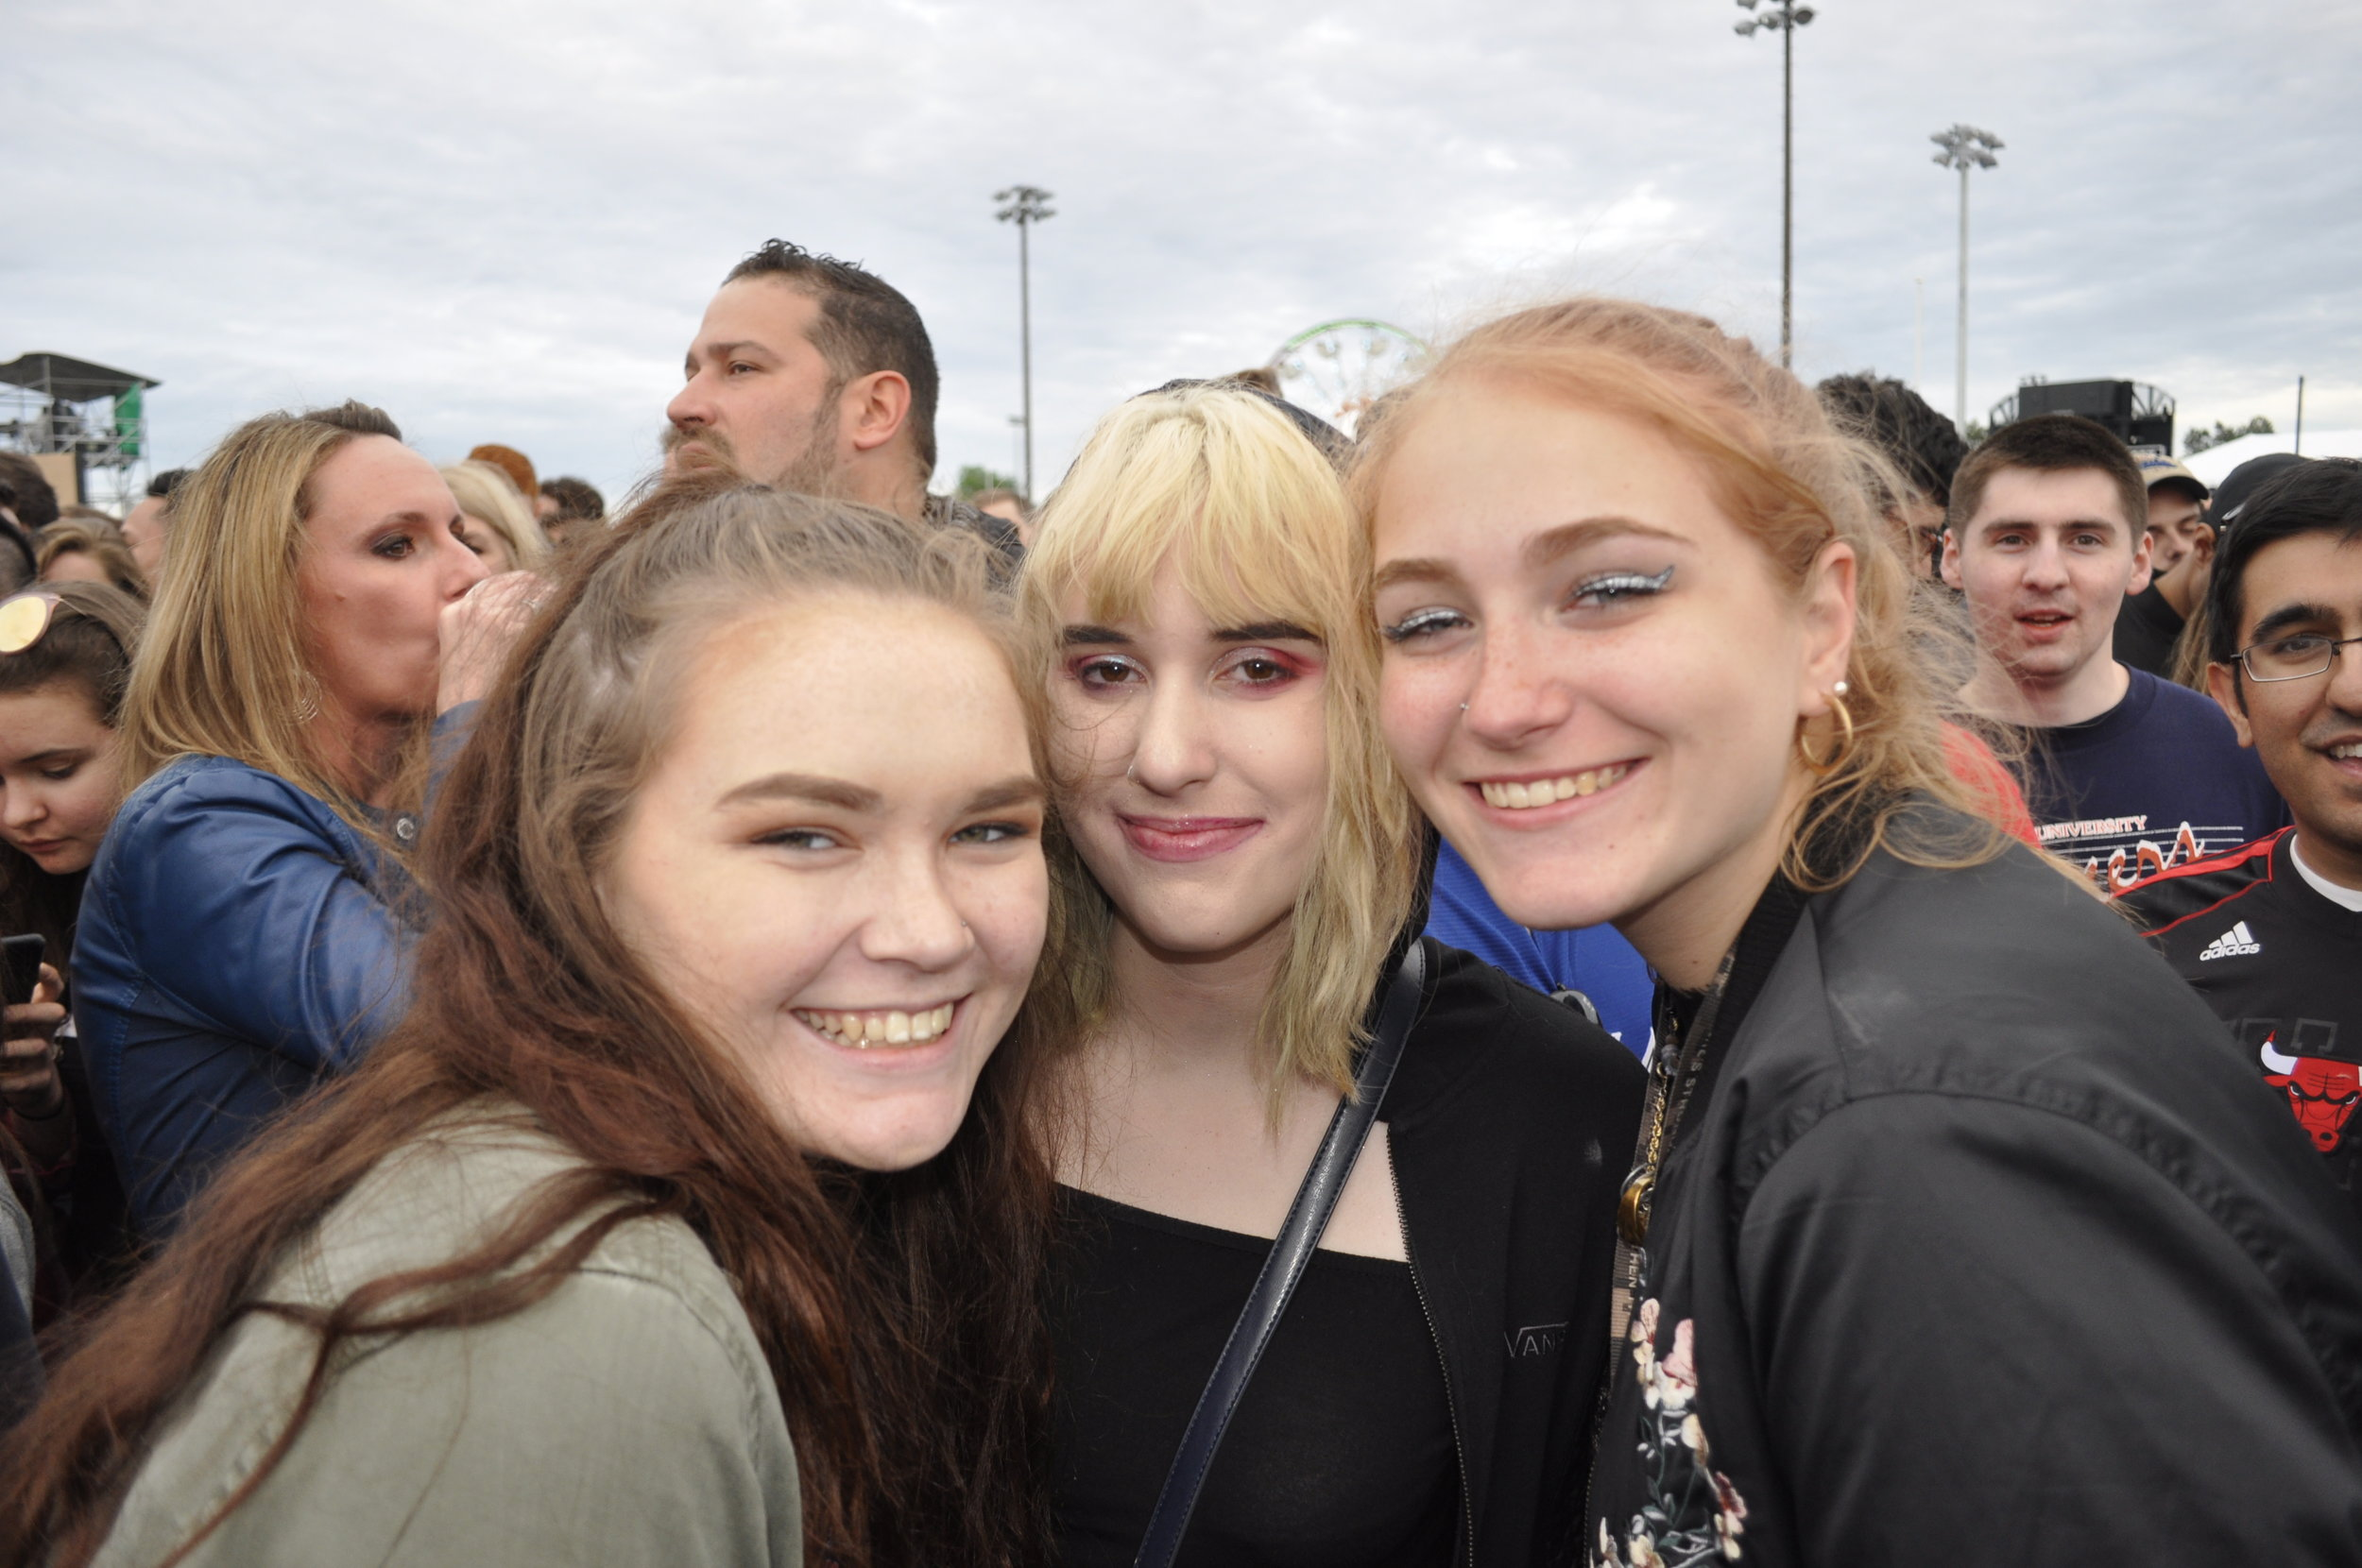 Festivalgoers(from left to right) Mackenzie Story, Lily Kray, and Riley Frederick waiting for The Xx to take the stage.